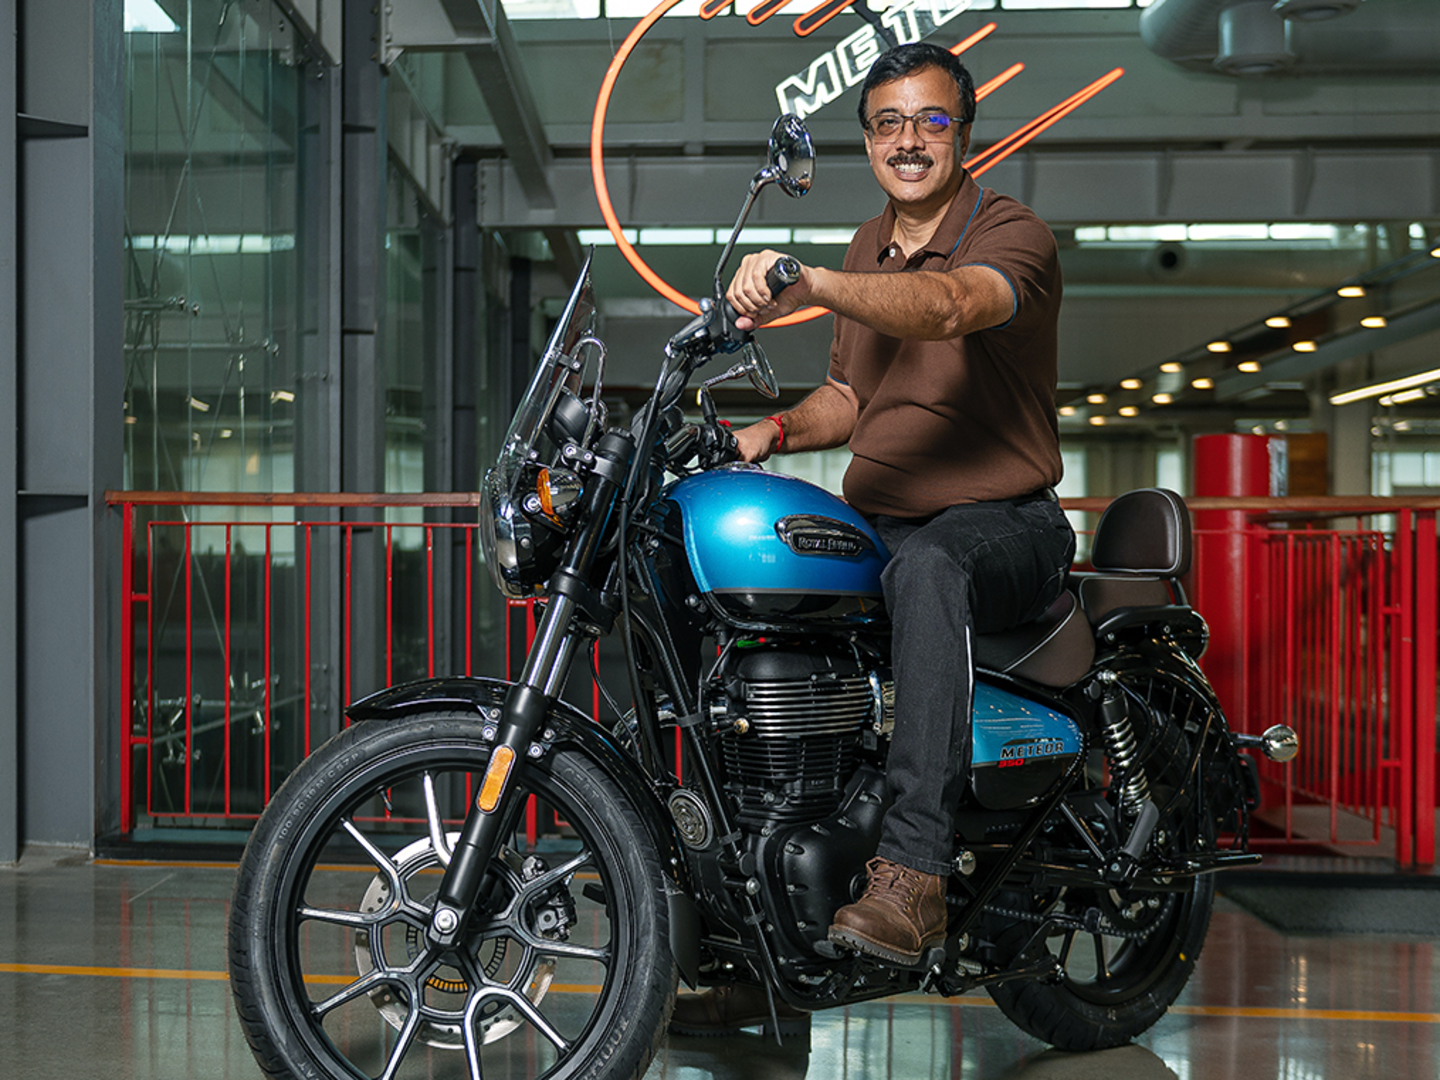 Royal Enfield is bulking up on mid-segment bikes, global expansion. T&C: No pillion allowed.